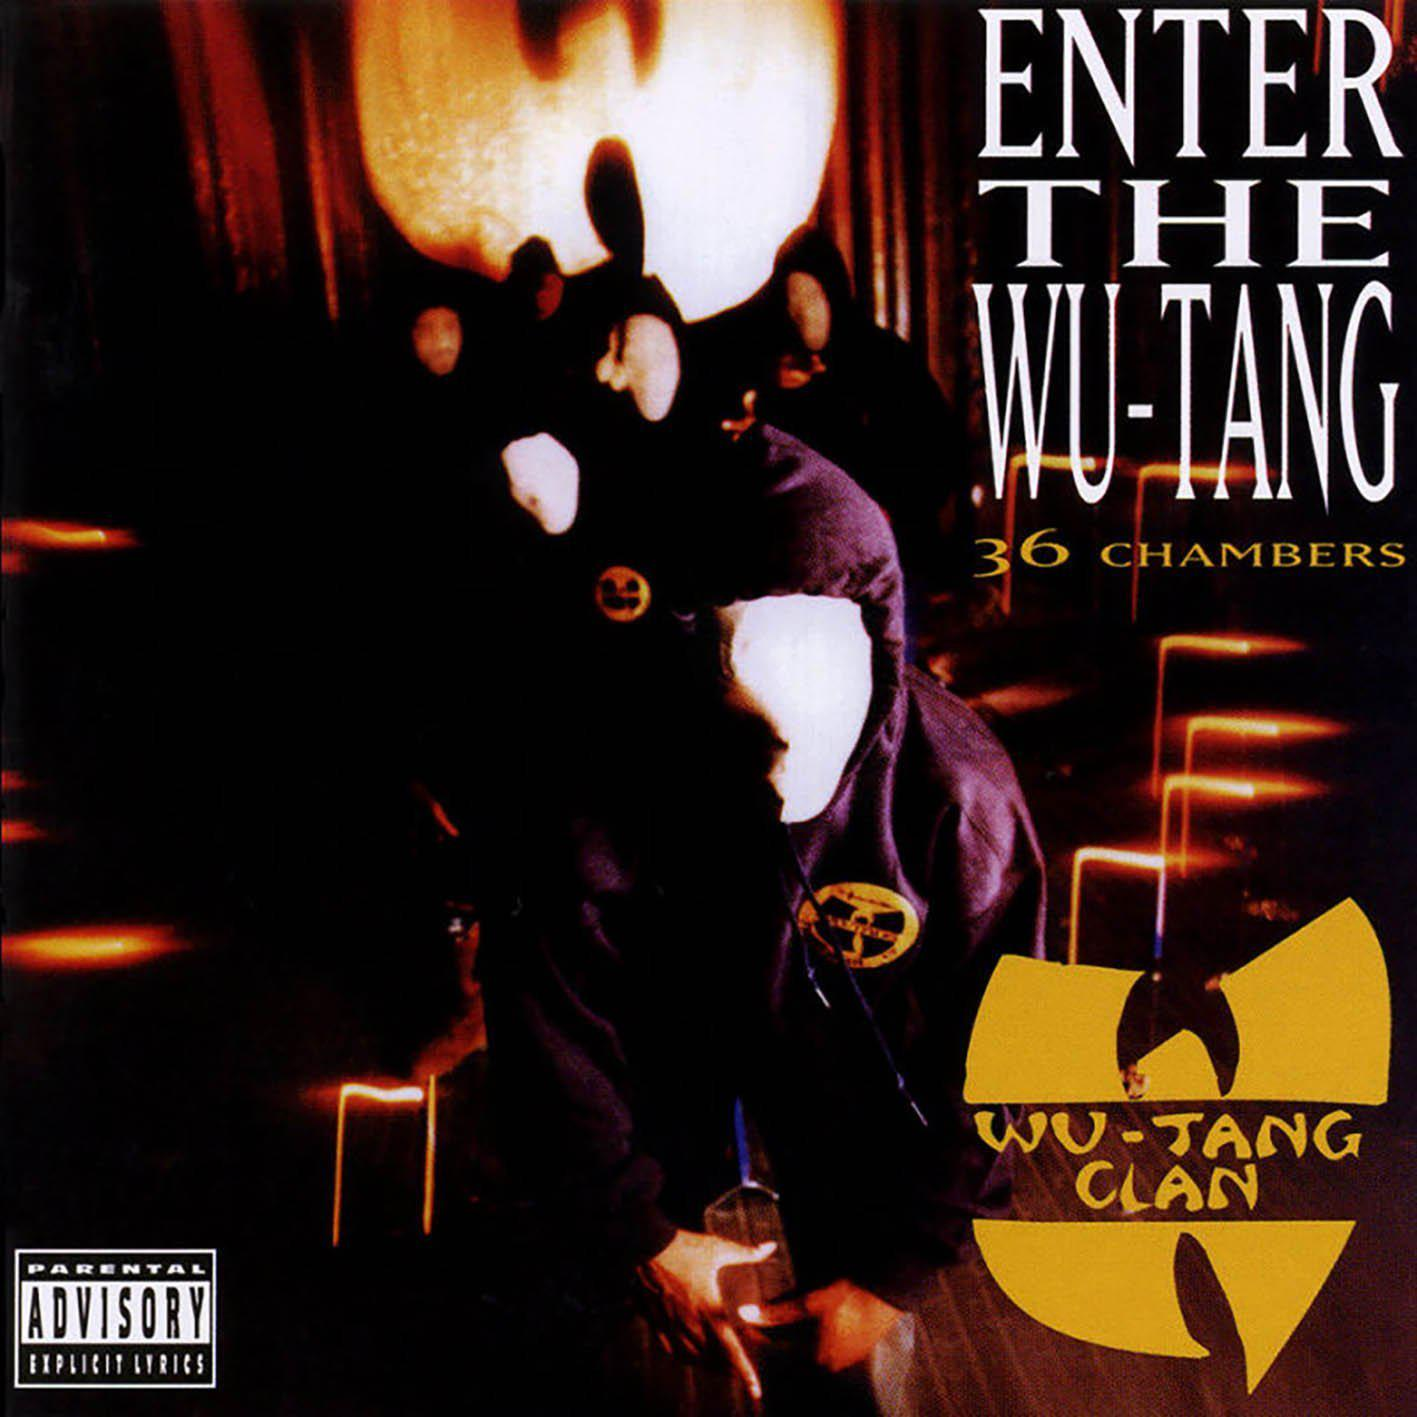 Wu-Tang Clan - Enter The Wu-Tang Clan (36 Chambers) [LP] (Yellow Vinyl, import)